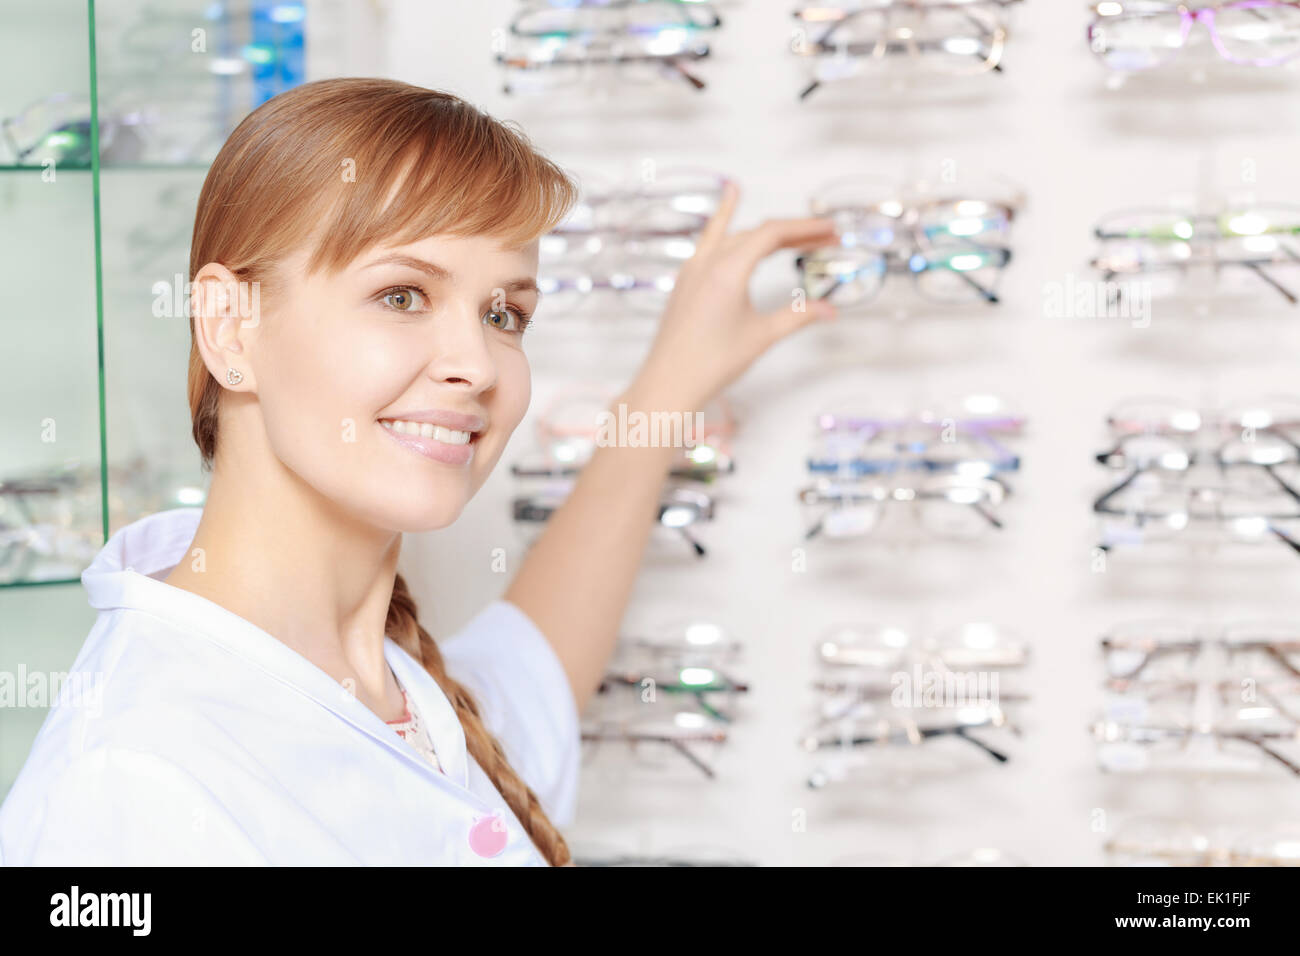 Health care consultant near the spectacles stand - Stock Image